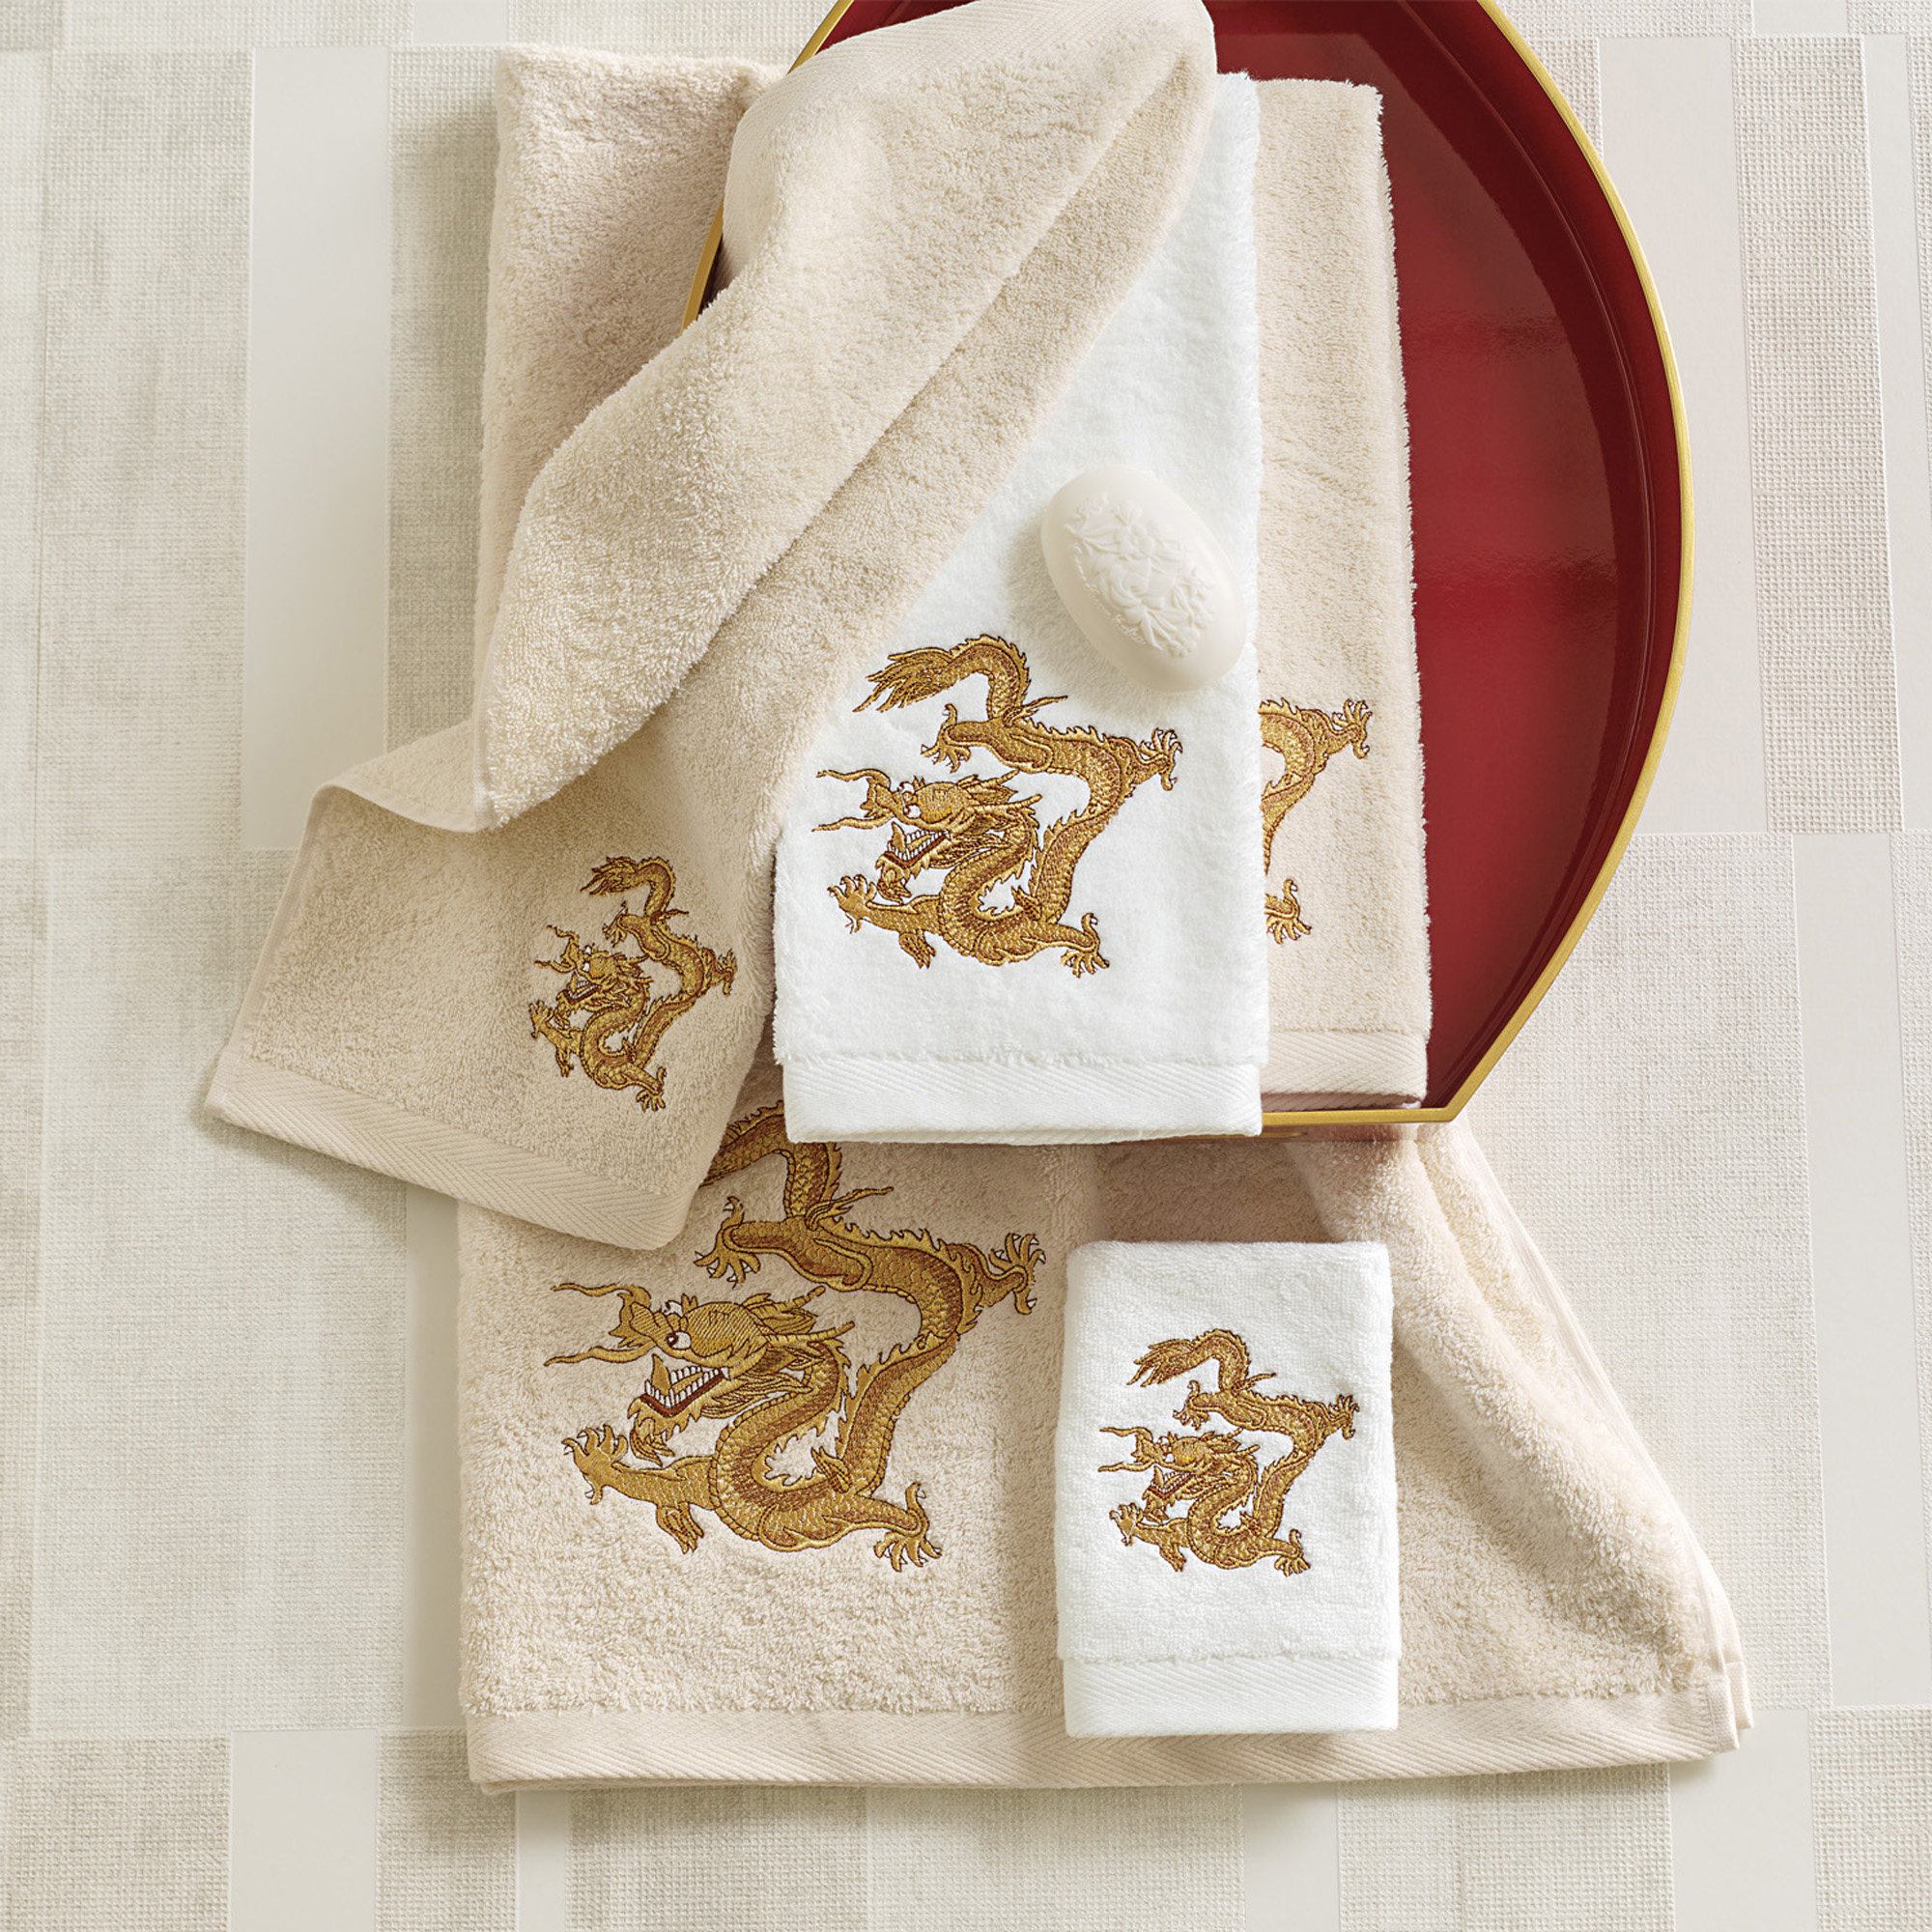 Dragon Bathroom Accessories Golden Dragon Towels Gump 39s